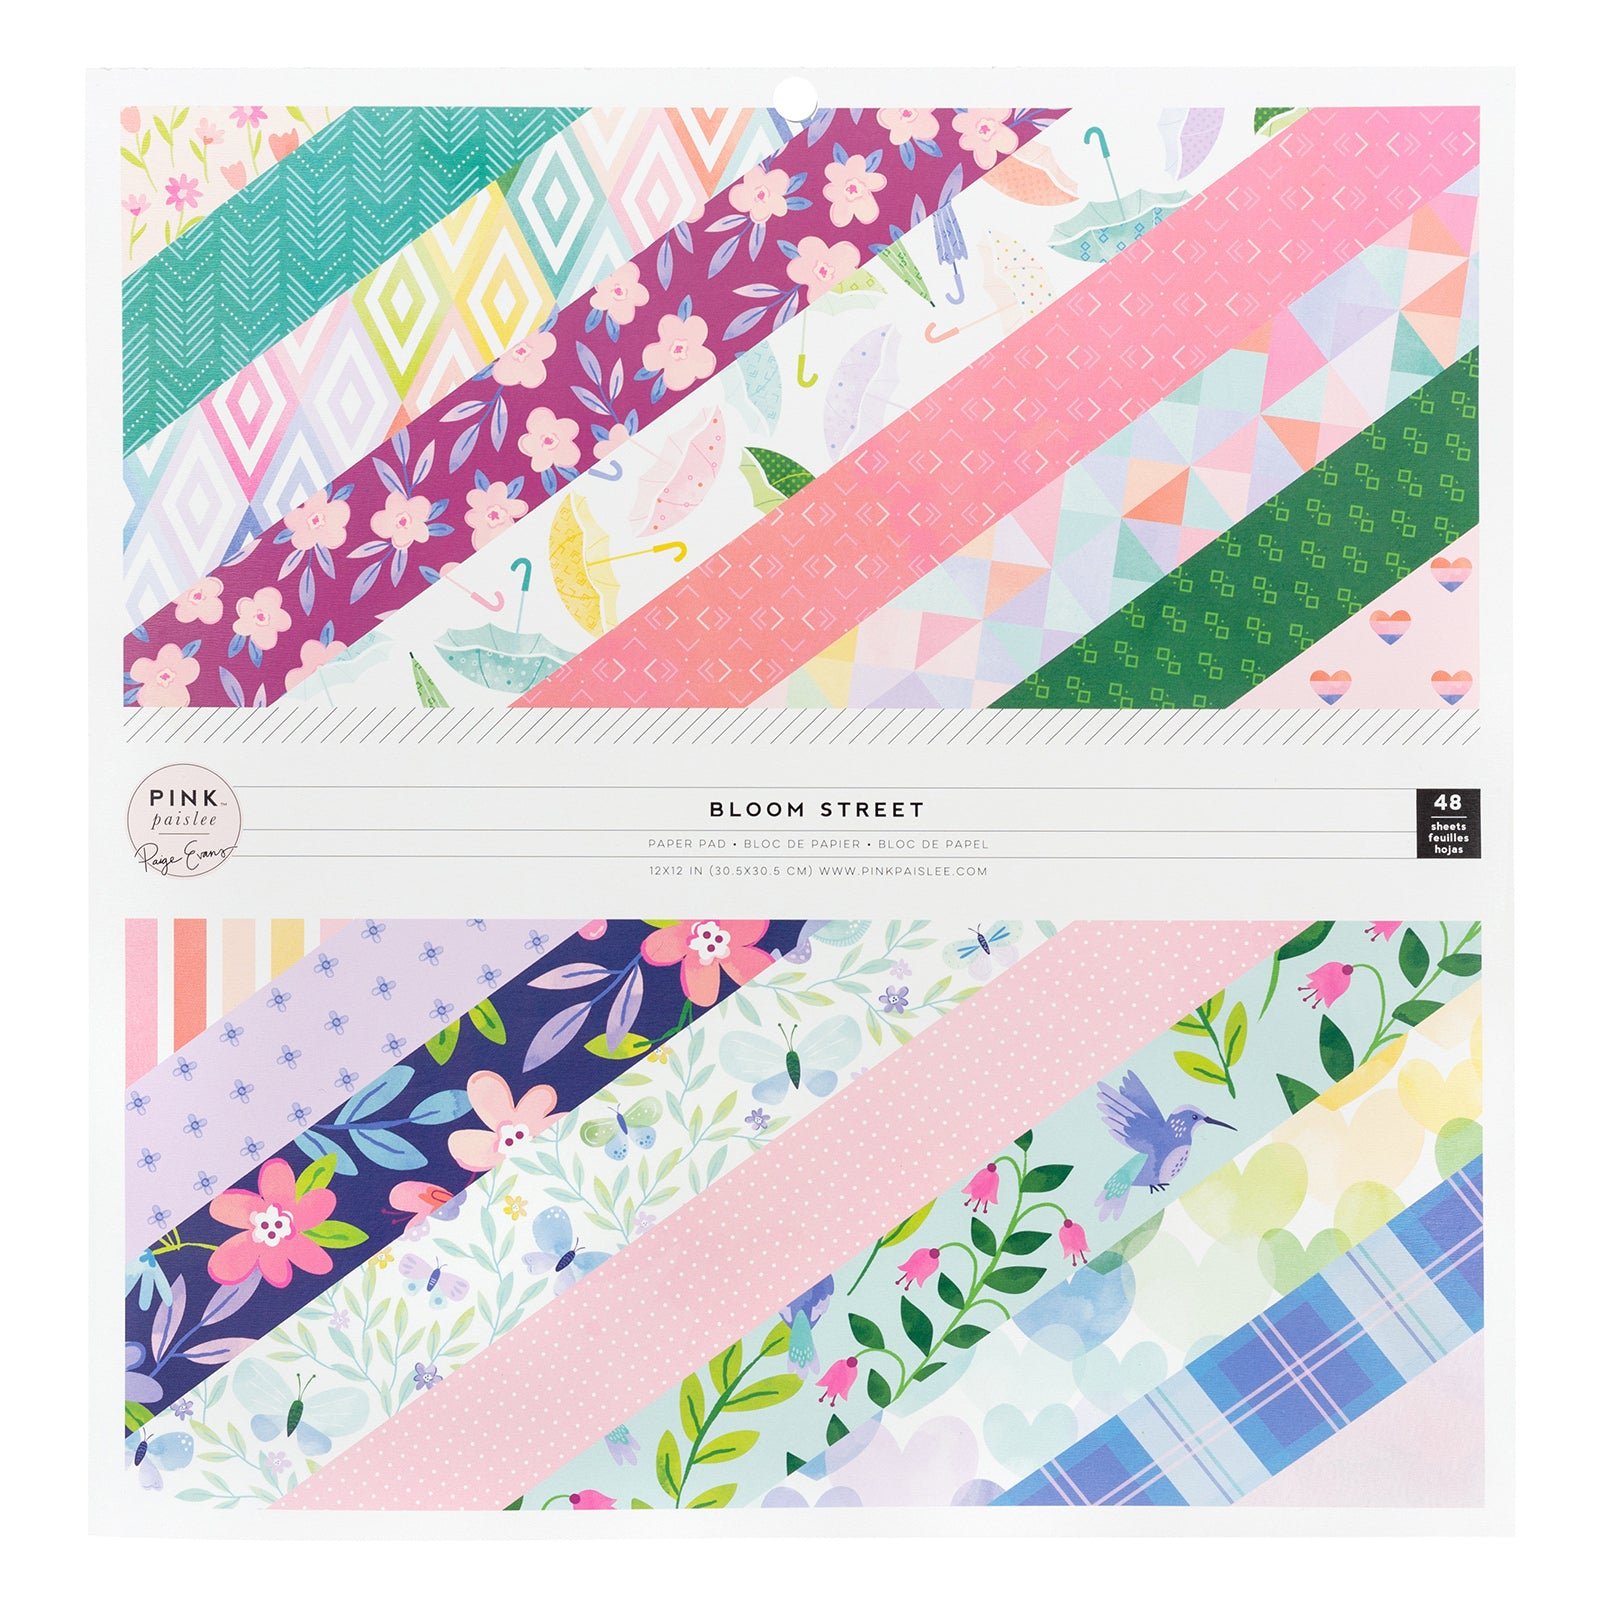 "Bloom Street Paper Pad 12"" / Block de Papel Floreciendo"